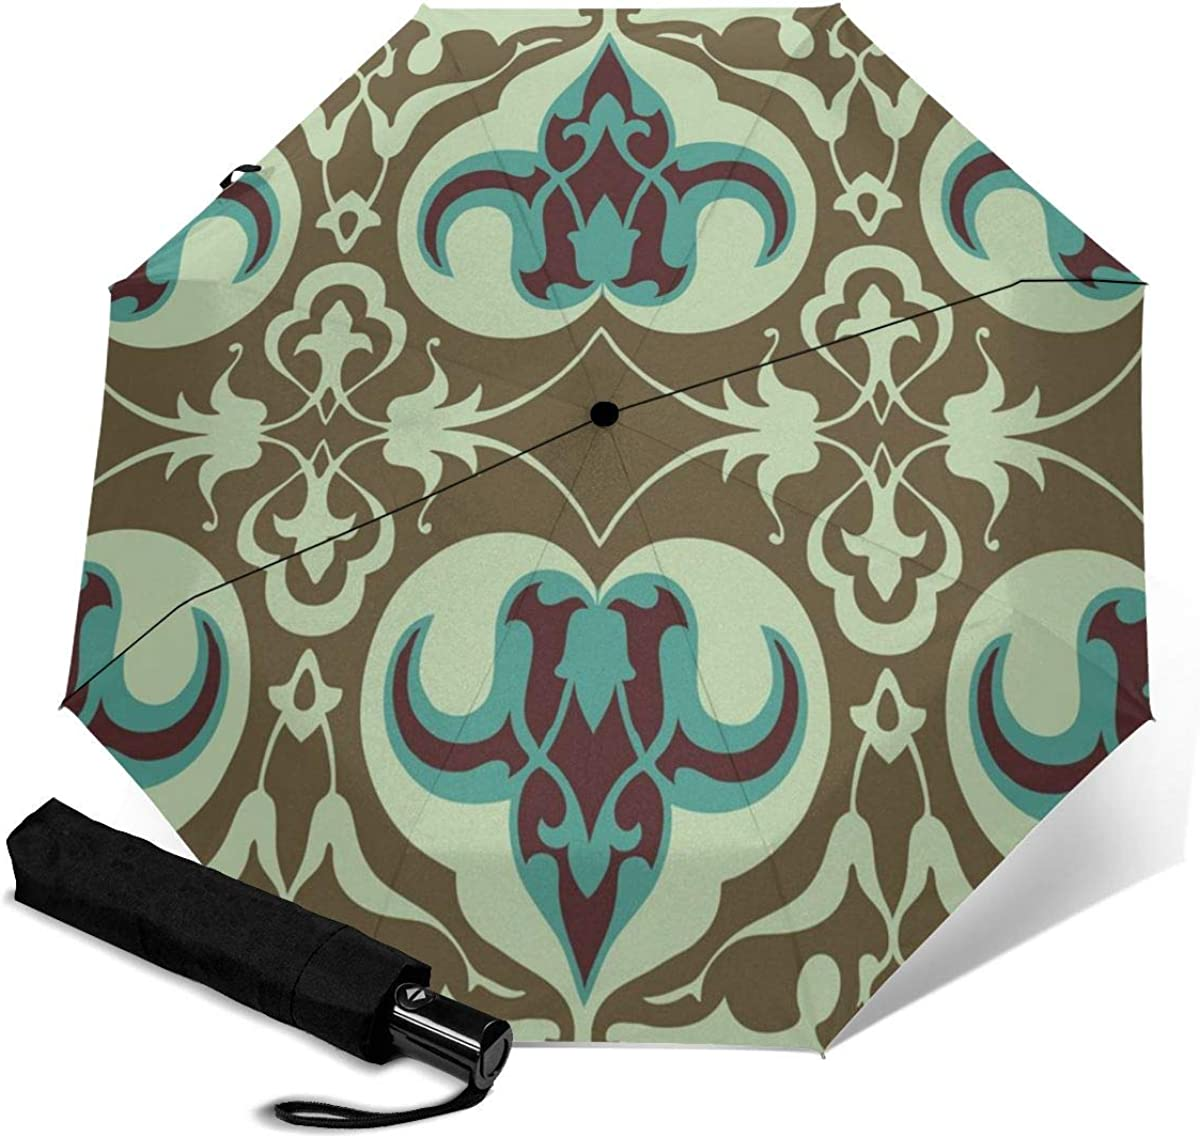 Vintage Floral Pattern Seamless Background Compact Travel Umbrella Windproof Reinforced Canopy 8 Ribs Umbrella Auto Open And Close Button Personalized